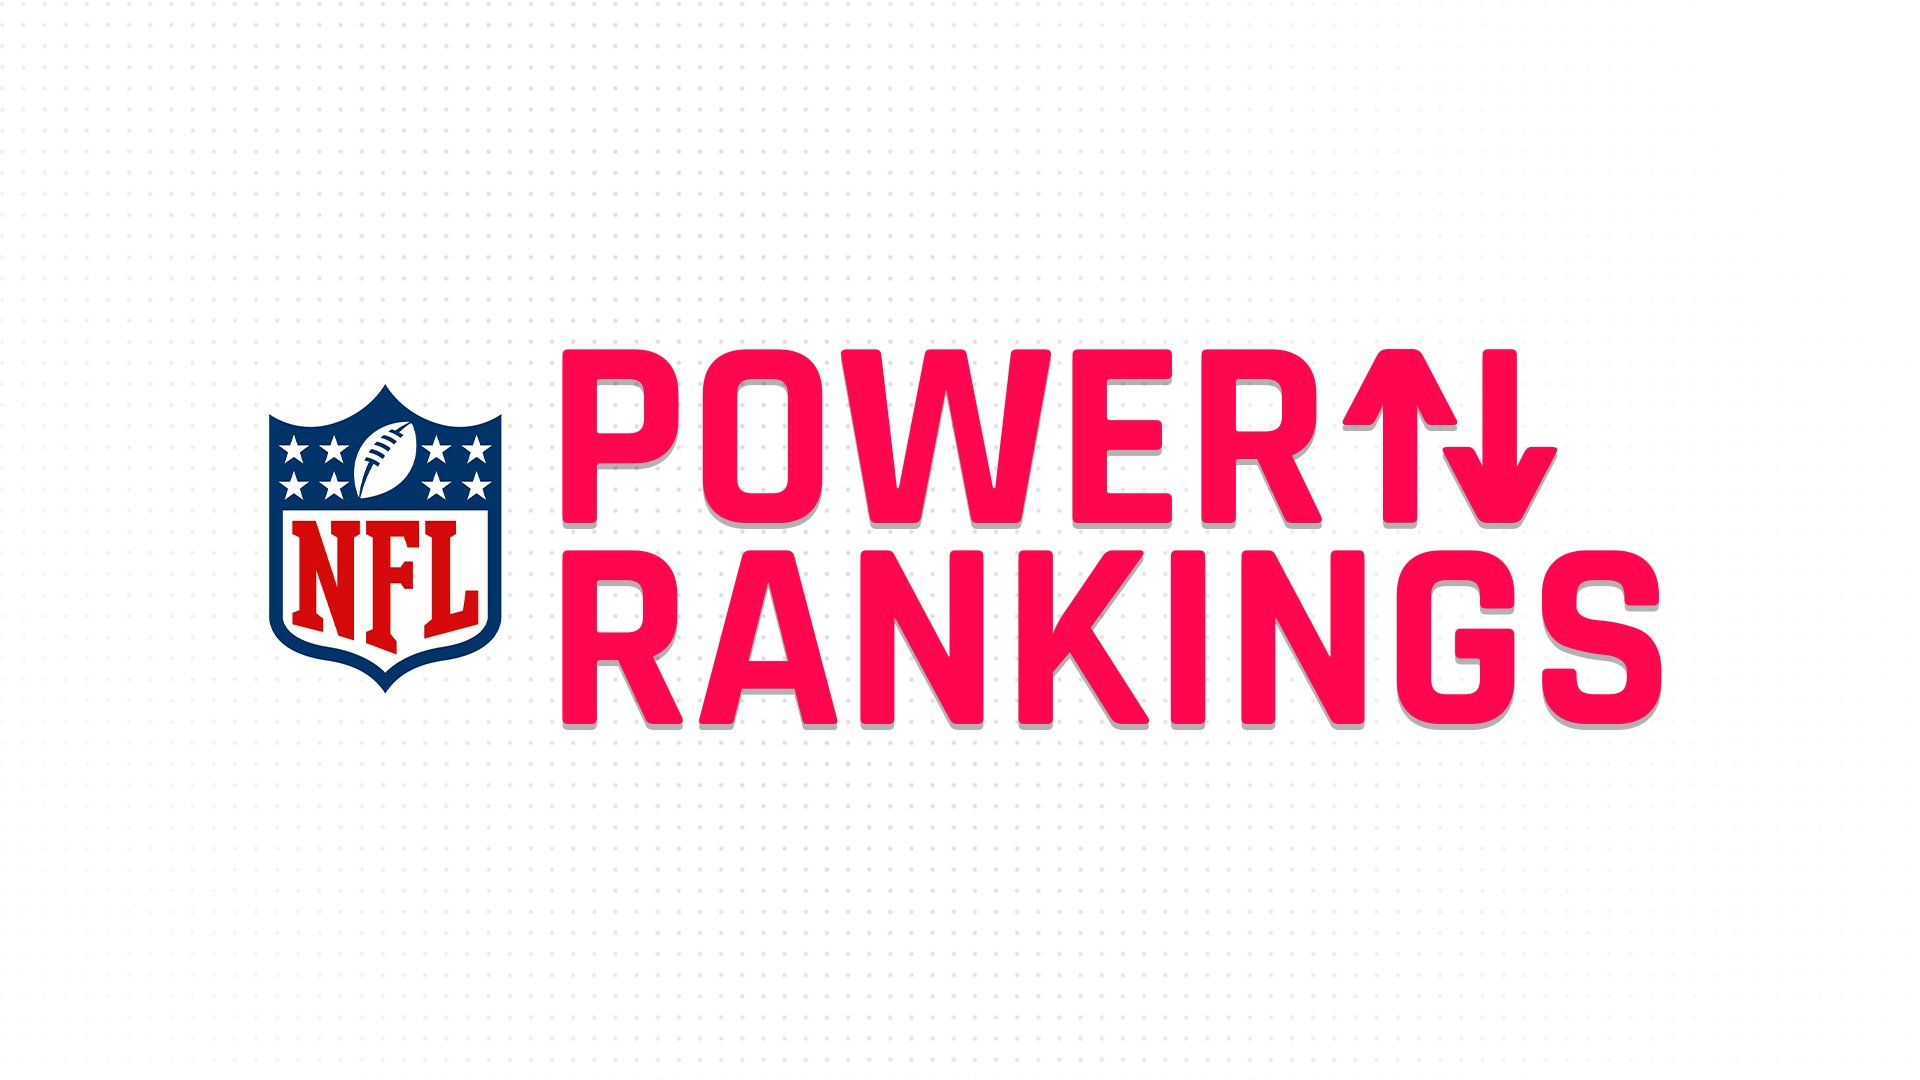 NFL power rankings: Browns, Cowboys, Seahawks rising; Packers, Bears facing QB questions to start camp